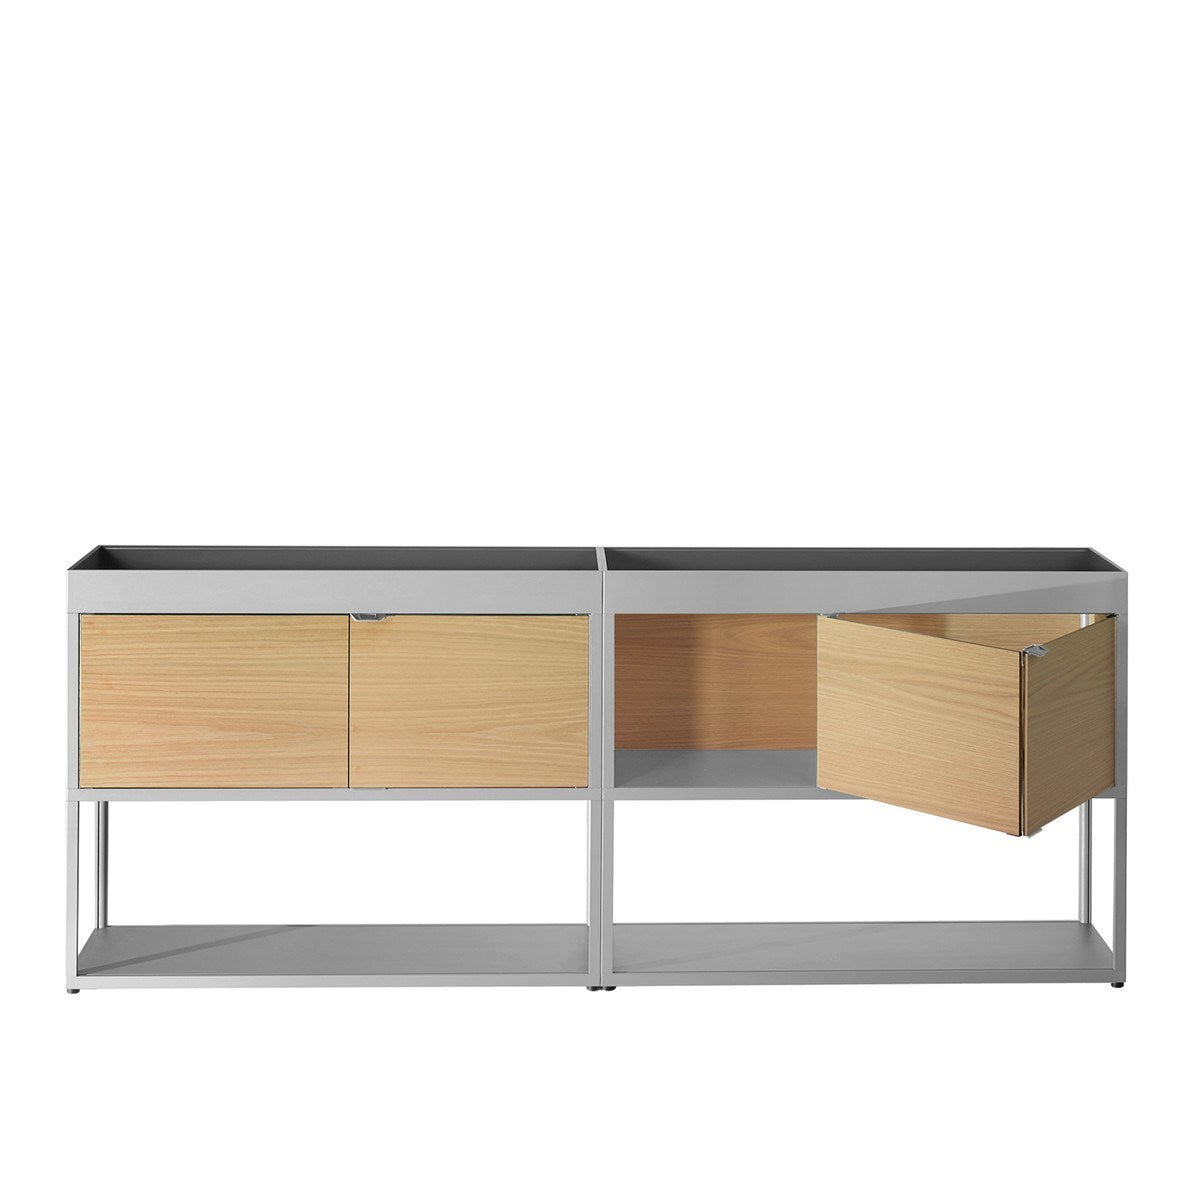 HAY NEW ORDER DOUBLE SIDEBOARD WITH TOP TRAY - Eclectic Cool  - 4